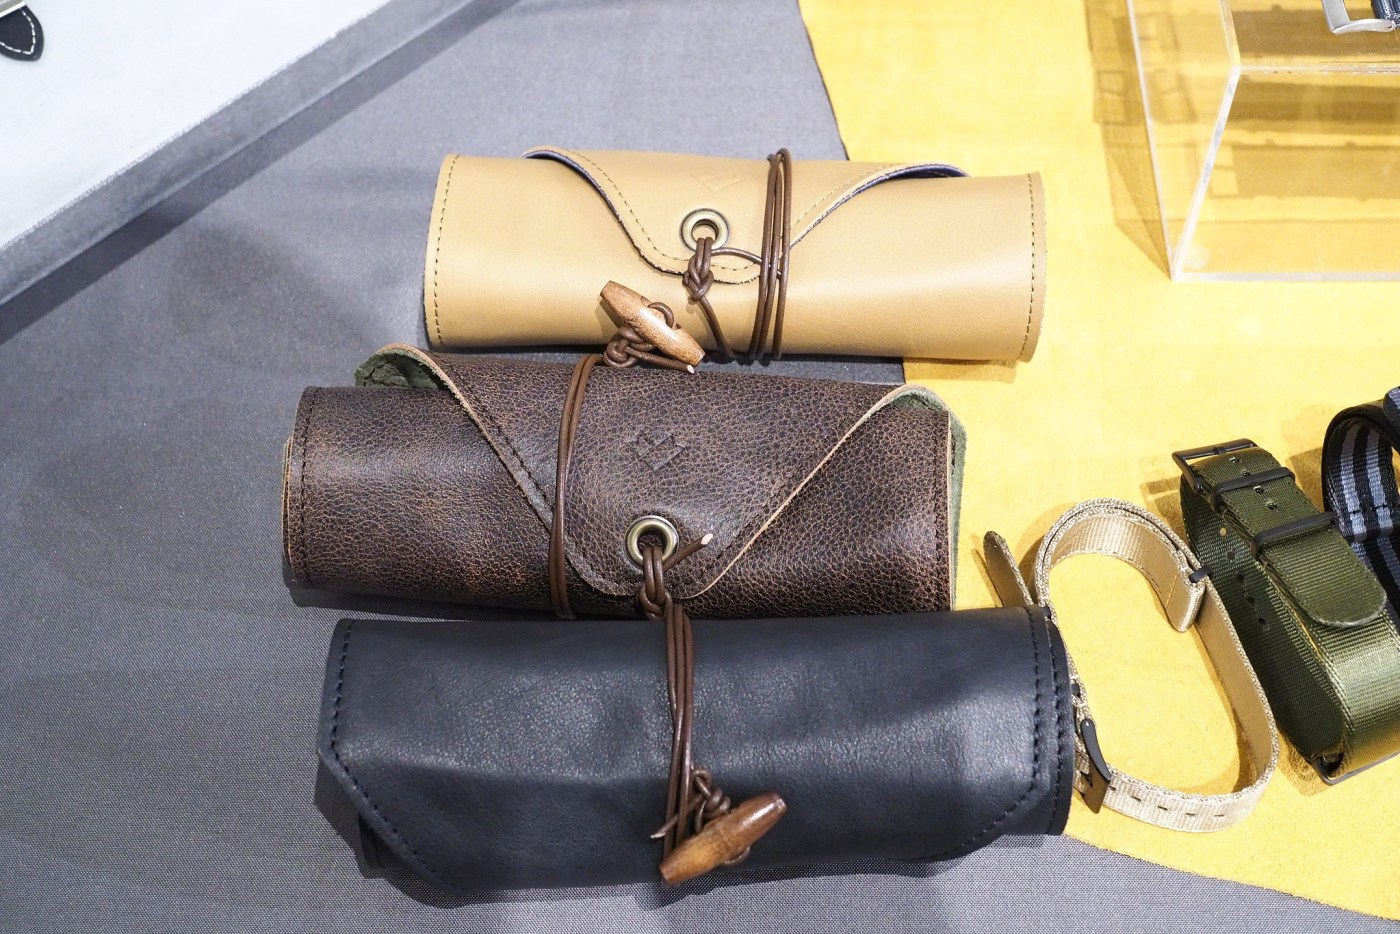 Crown and Buckle Black Label leather watch rolls